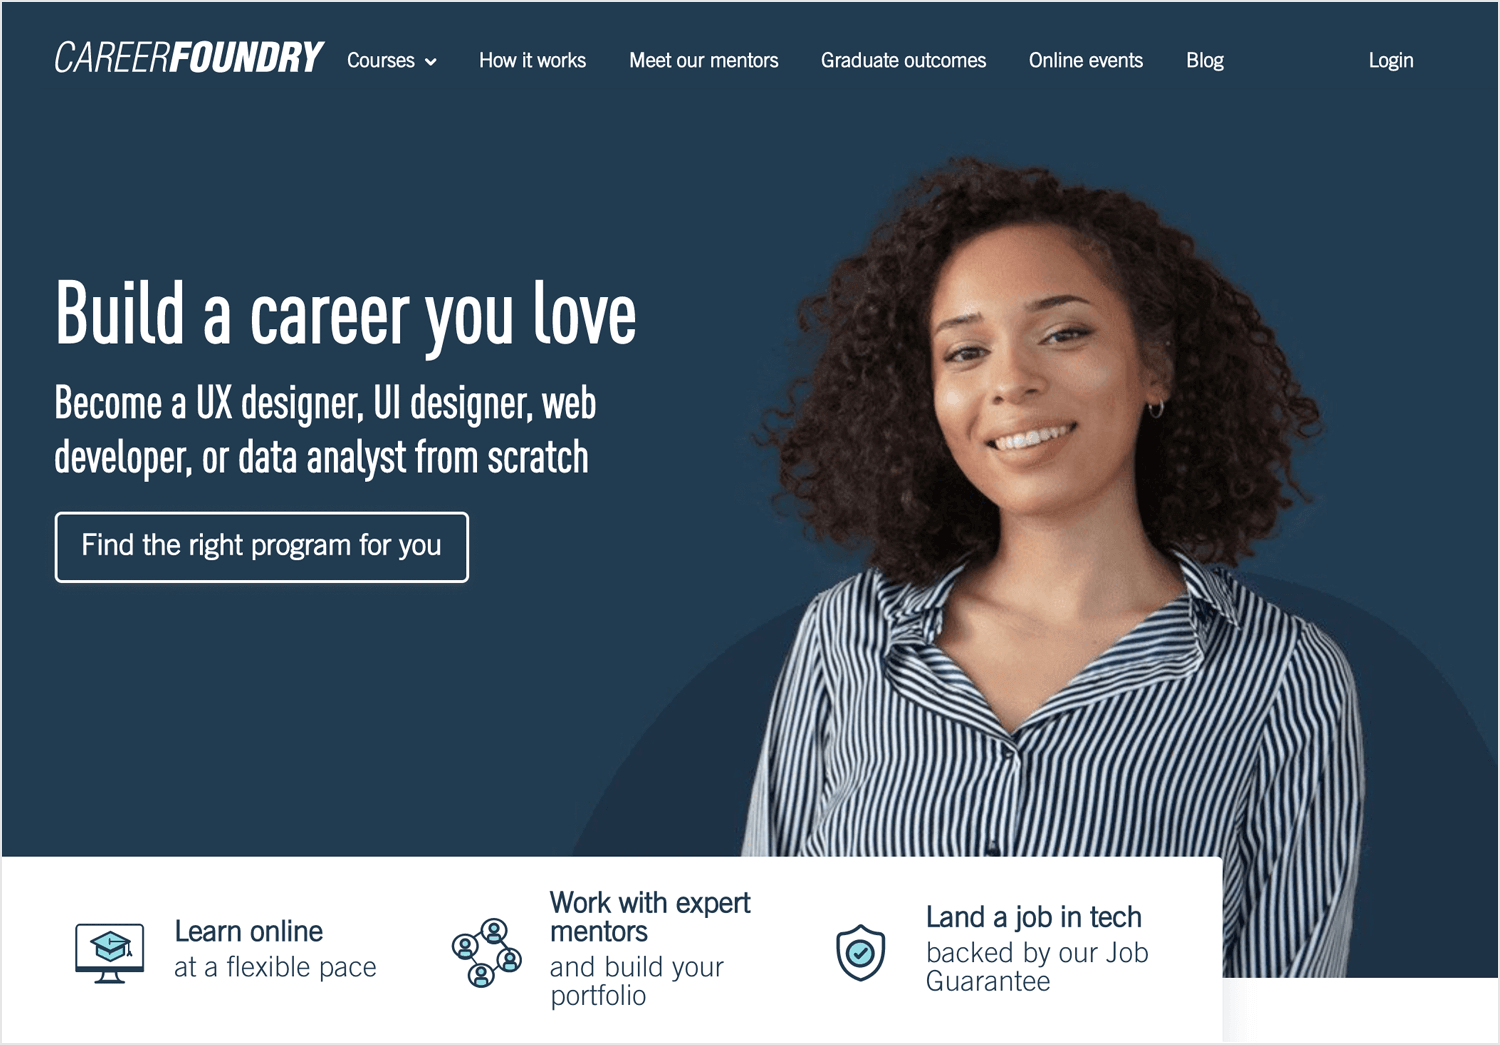 careerfoundry as ux blog for learning design online